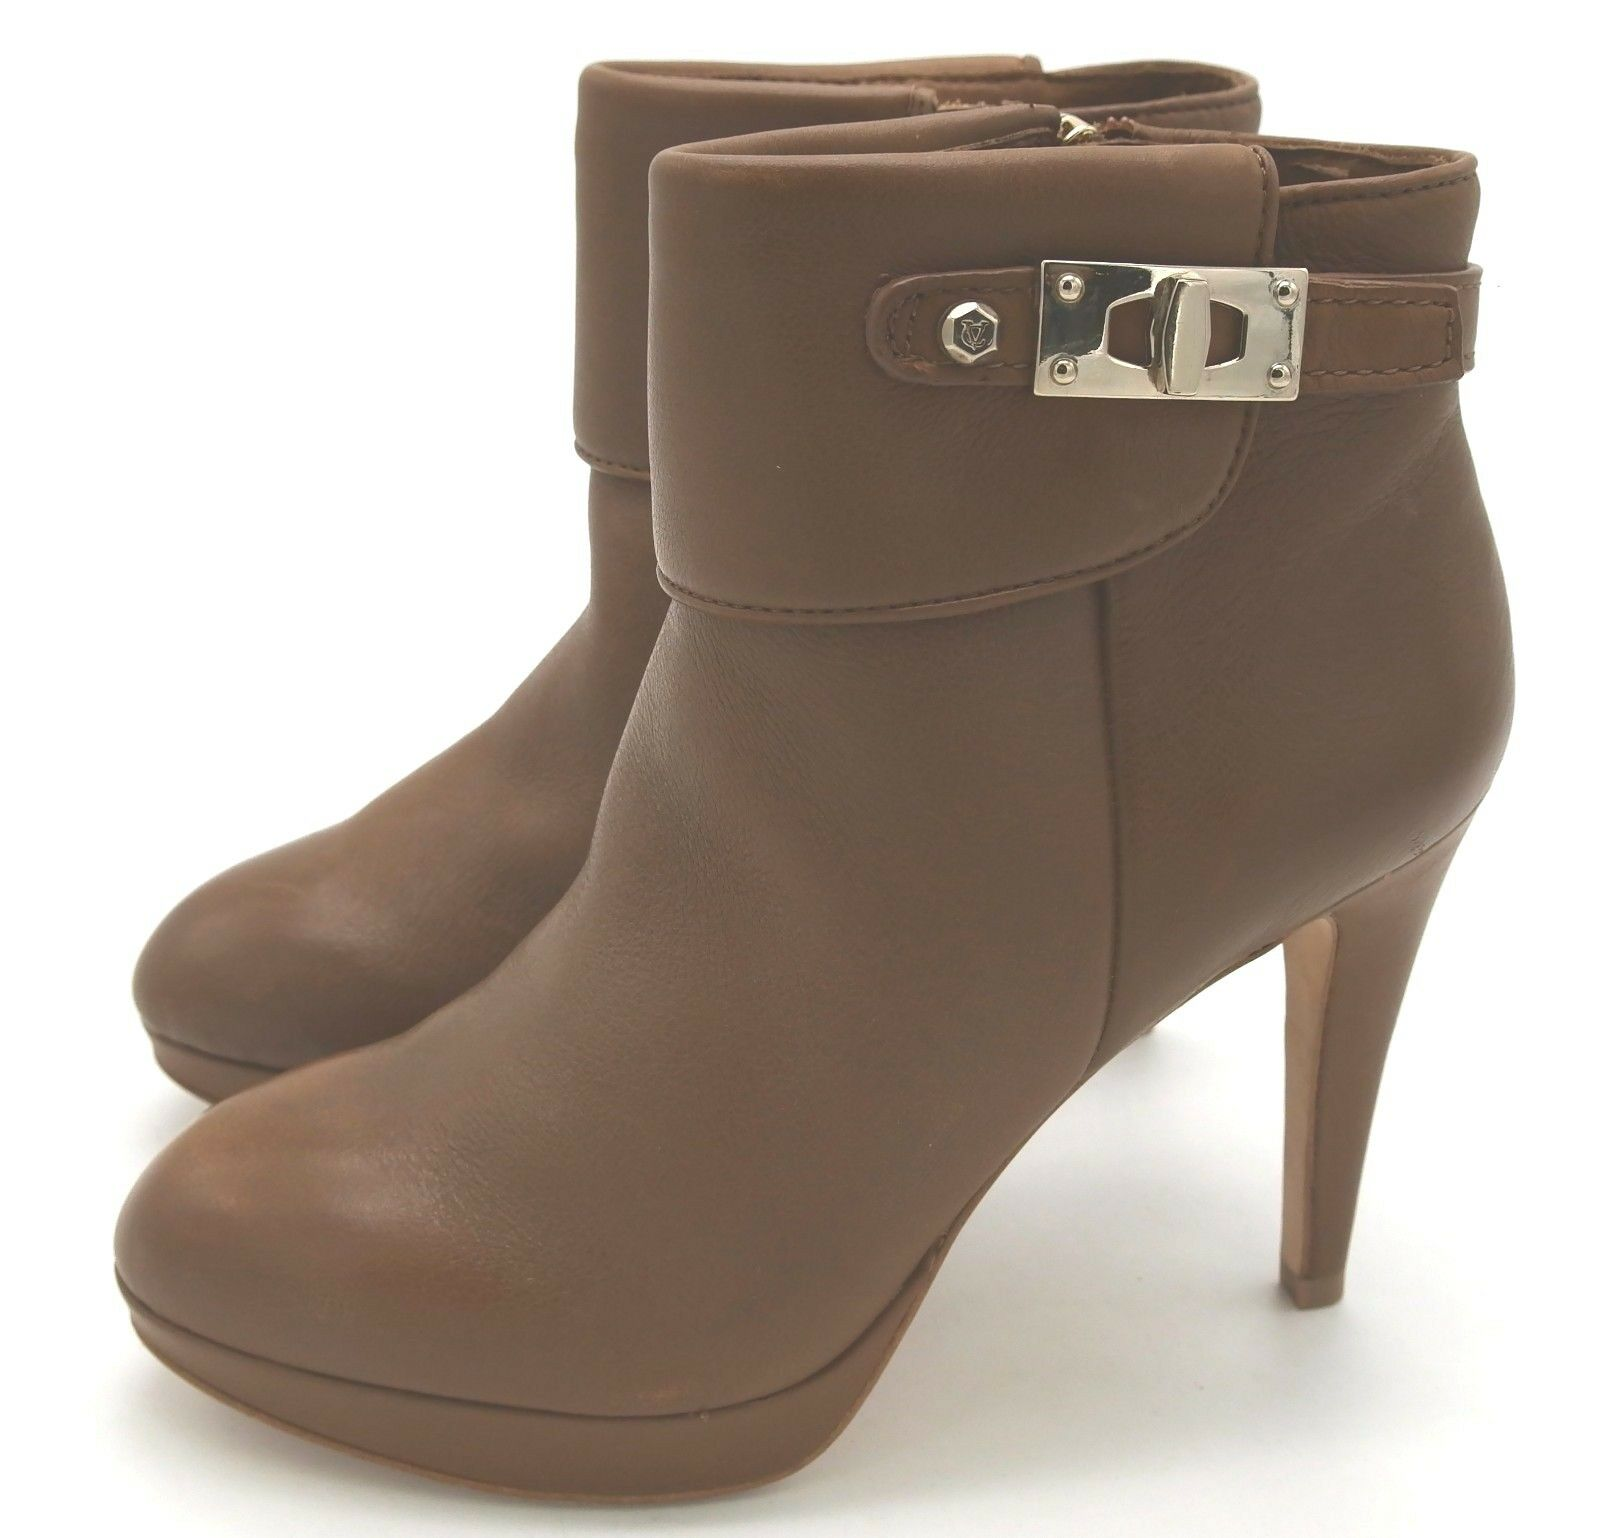 J6828 New Women's Vince Camuto Signature Evalina Camel Leather Ankle Bootie 6 M